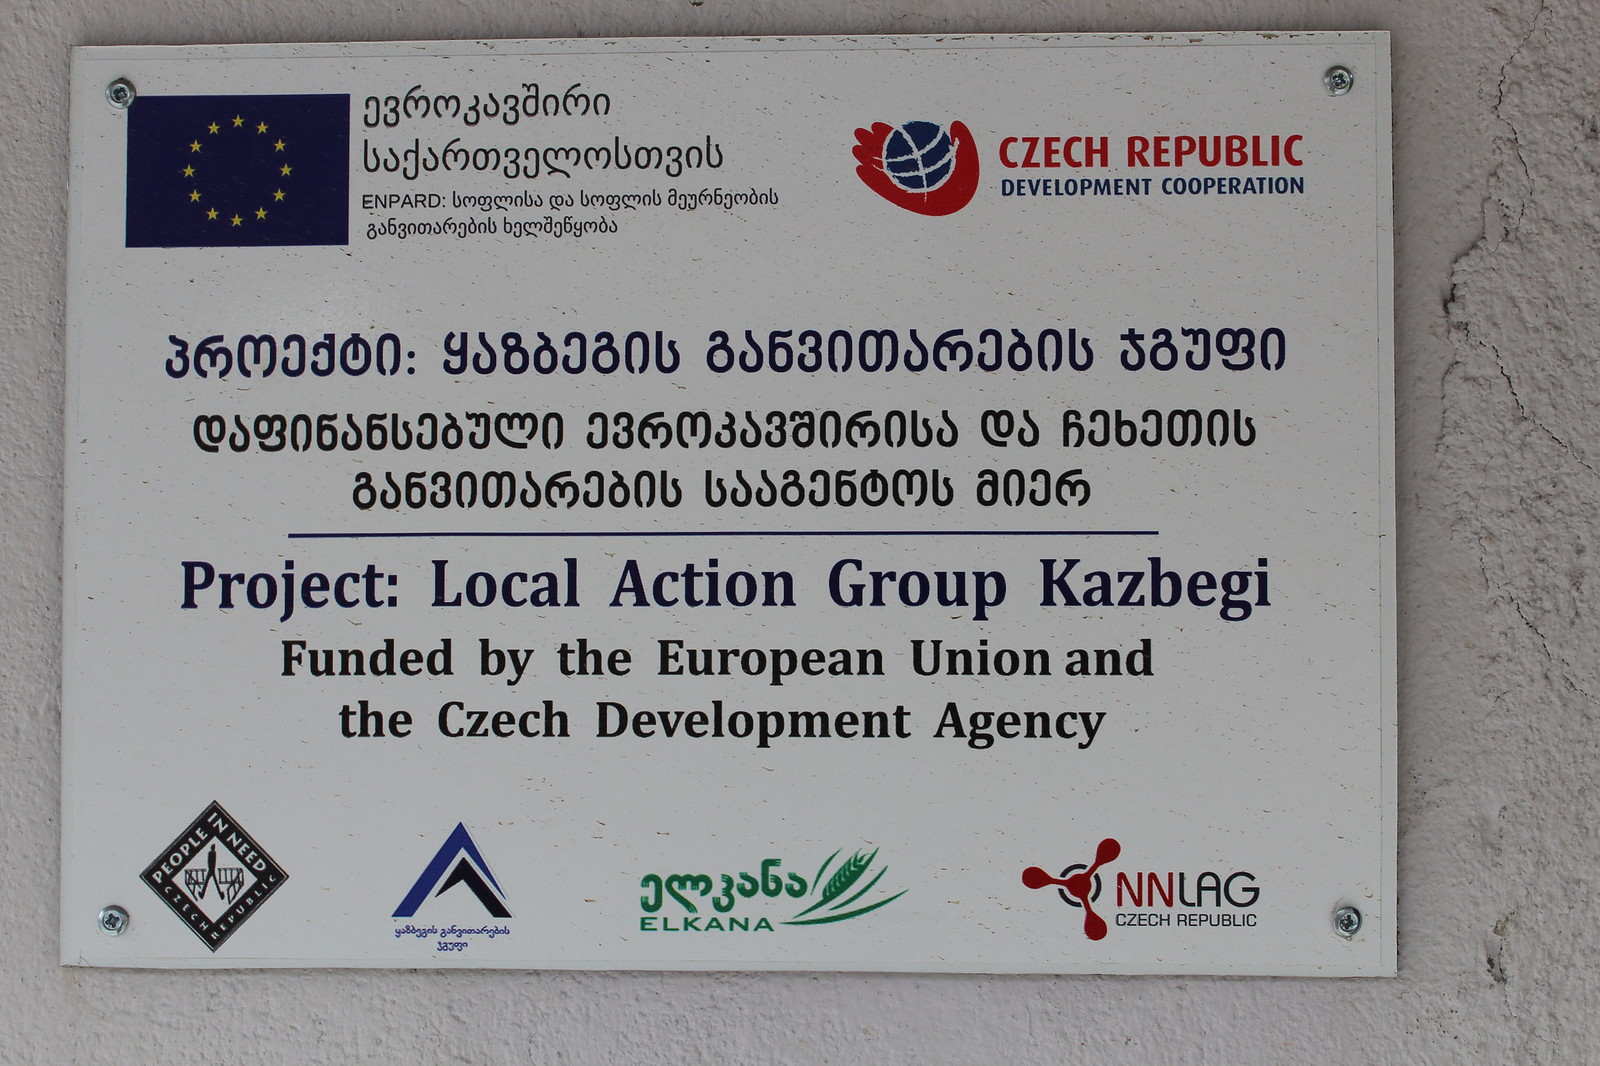 Meeting with LAG (local action group) in Kazbegi, March 2018